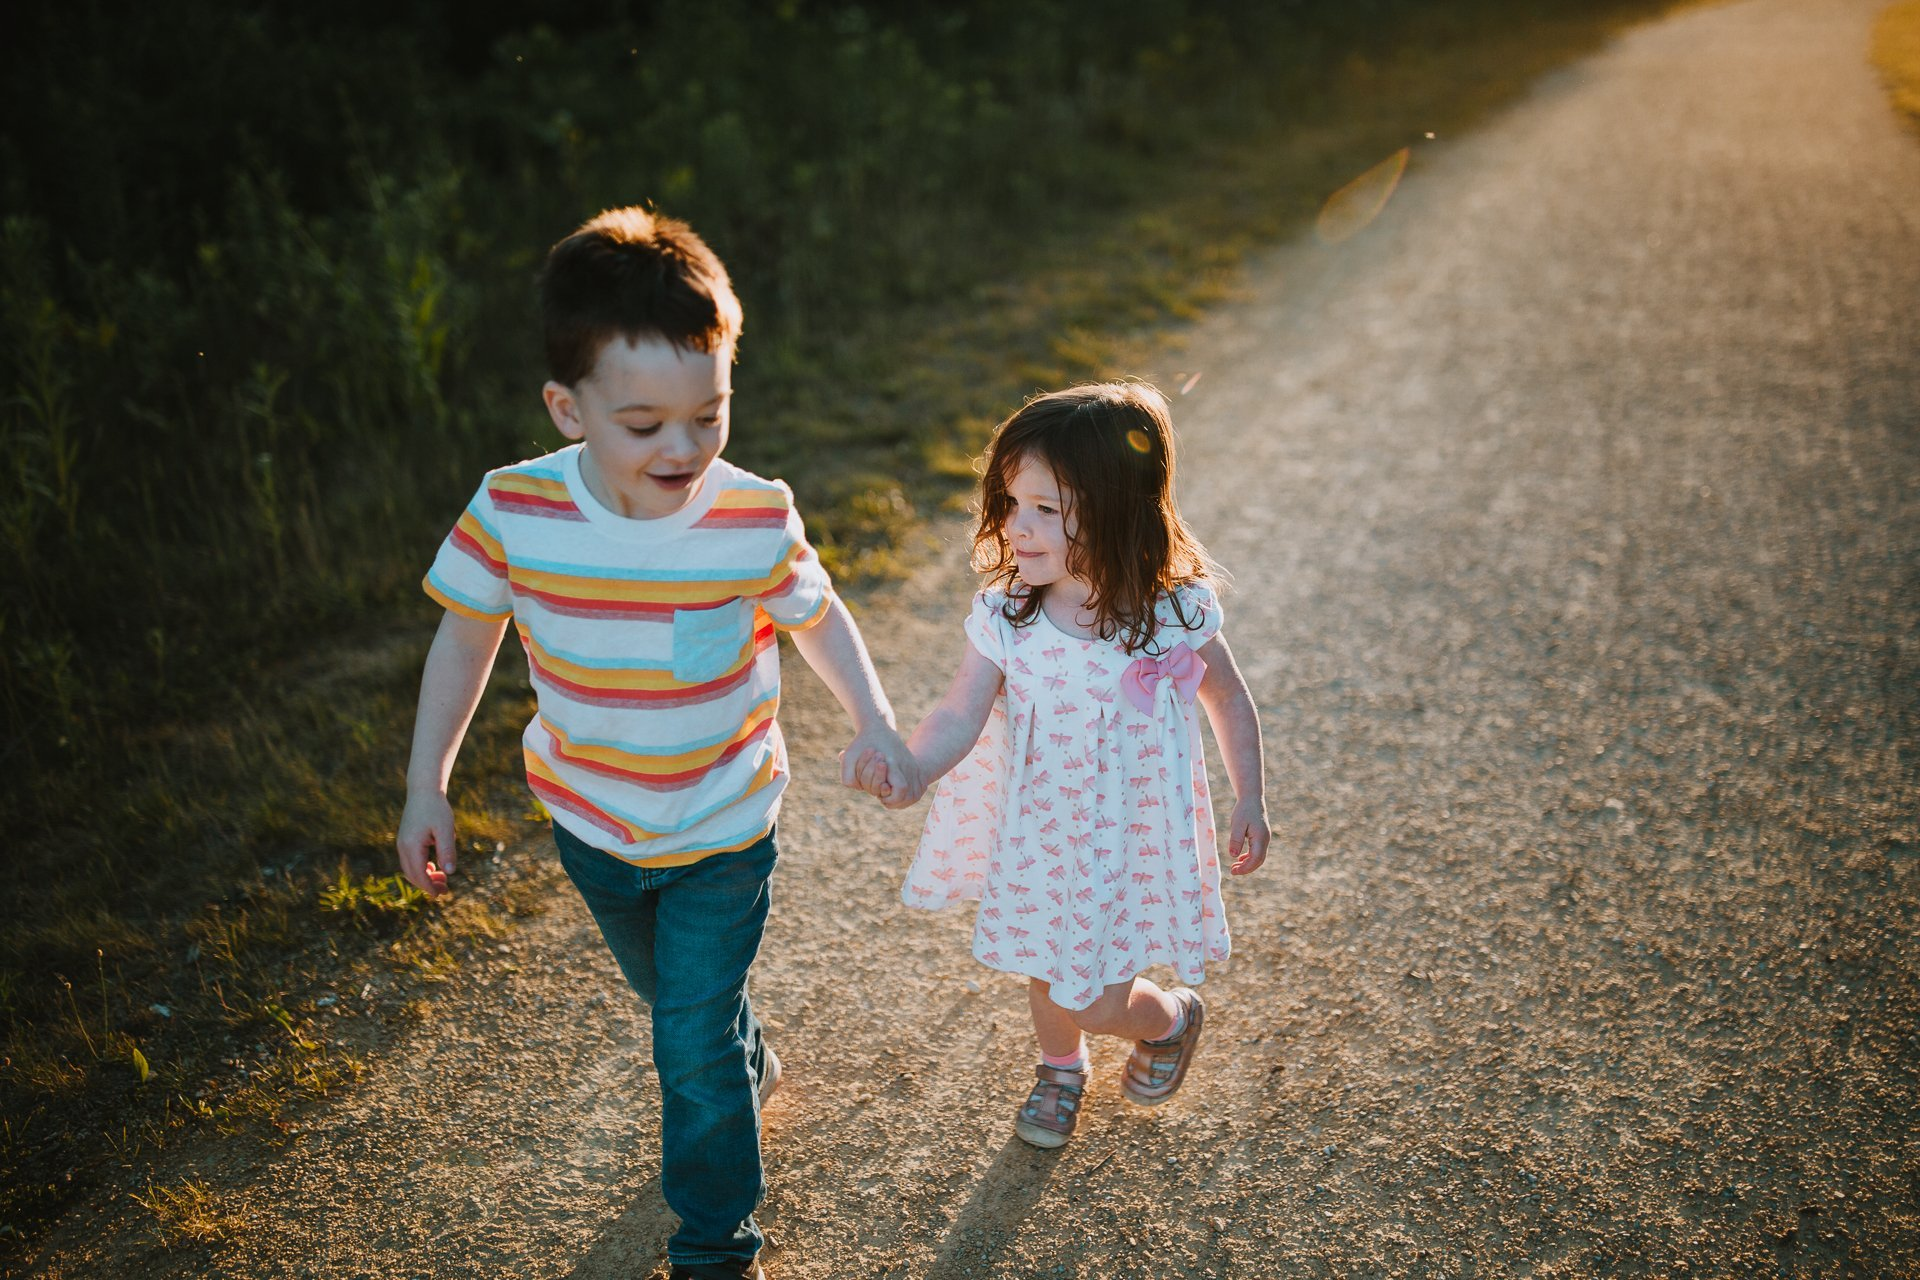 A young brother and sister walk down a gravel path hand in hand.